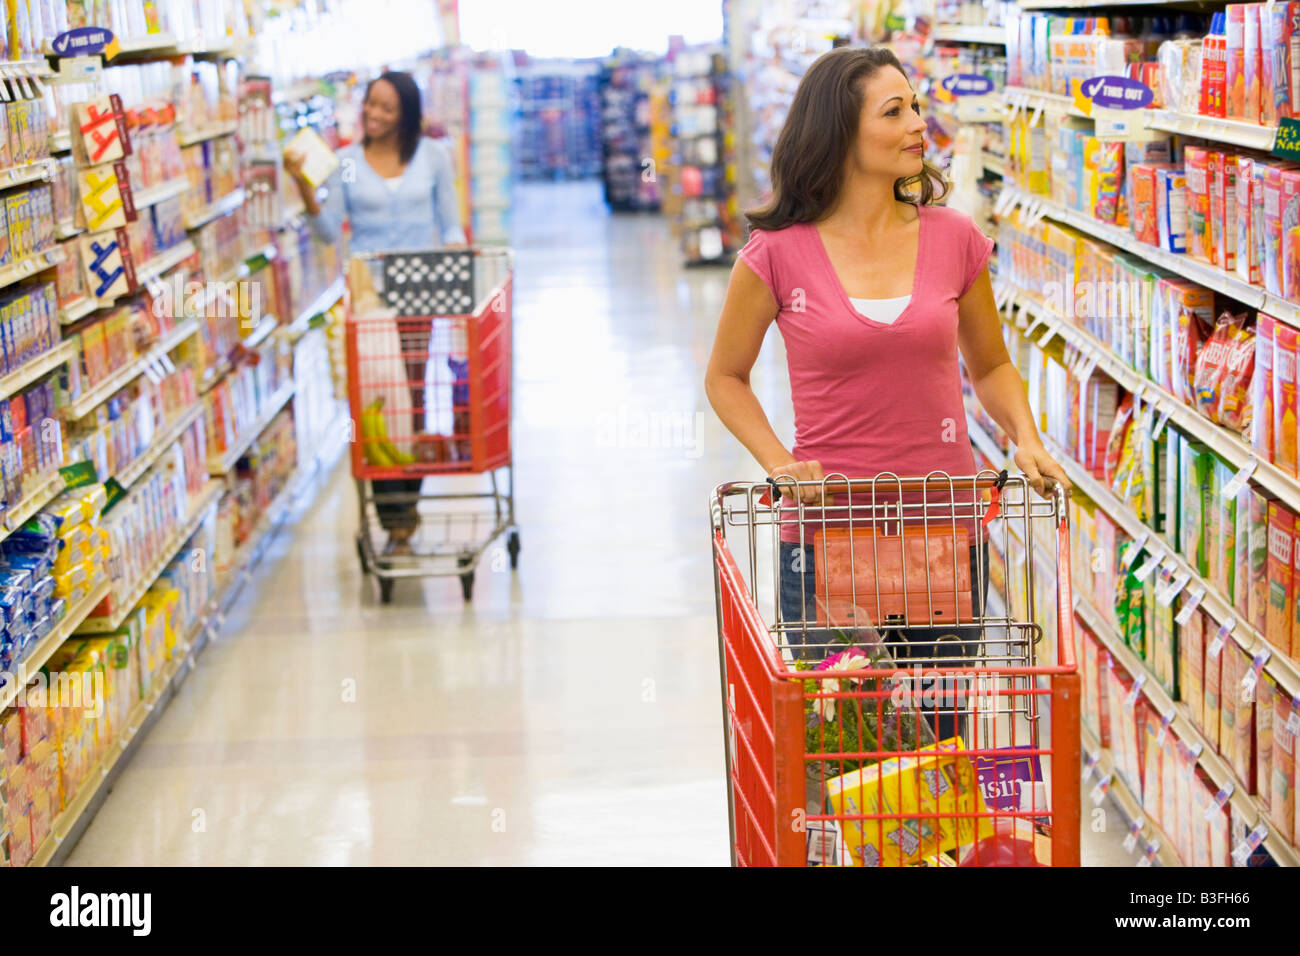 Two women shopping at a grocery store - Stock Image